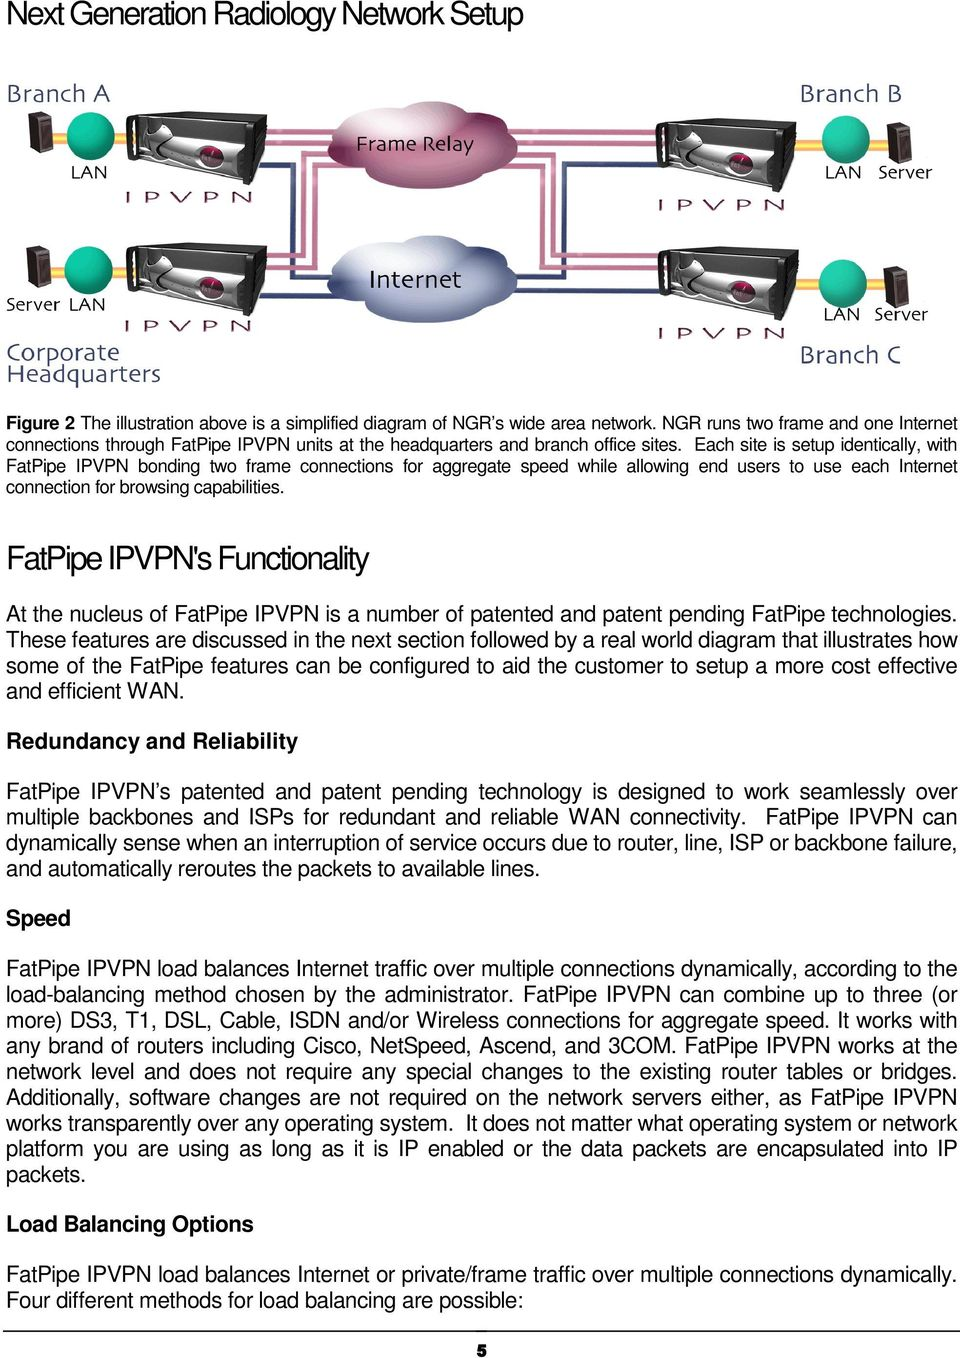 Each site is setup identically, with FatPipe IPVPN bonding two frame connections for aggregate speed while allowing end users to use each Internet connection for browsing capabilities.